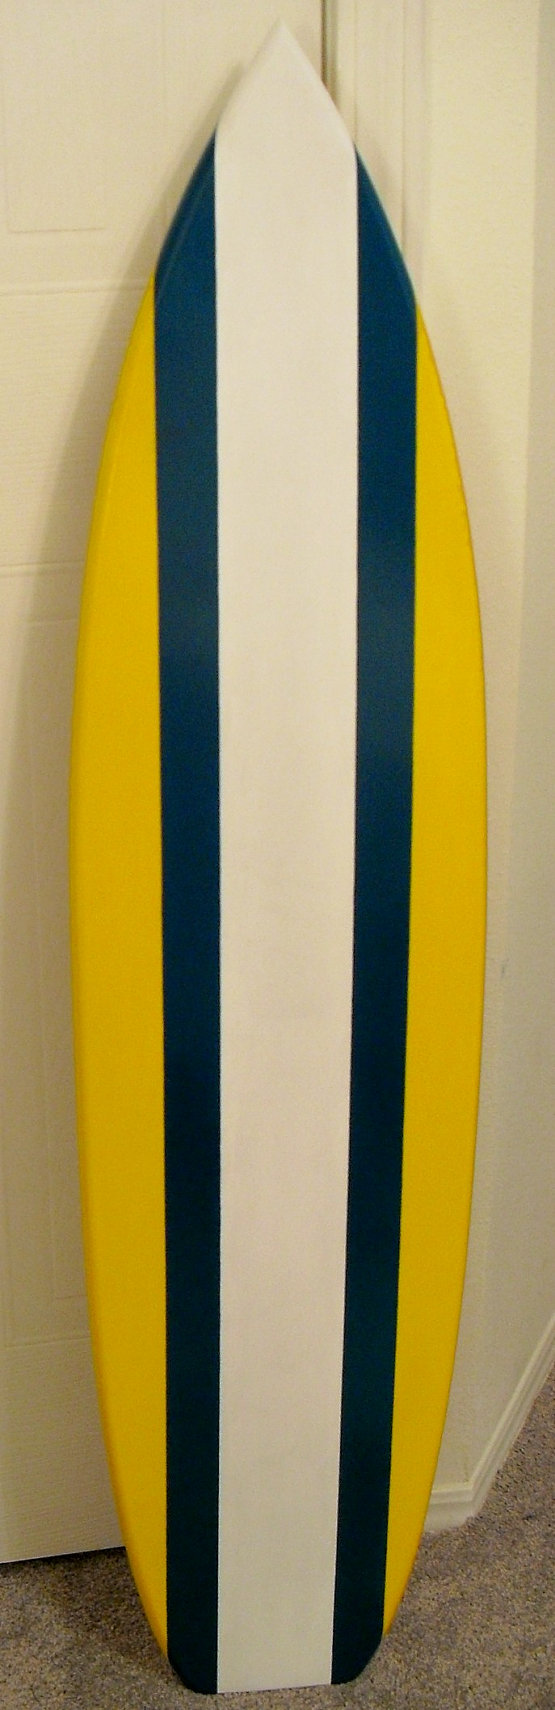 SURFBOARD WALL ART White/teal/yellow by scrollerplus4 on Etsy ...